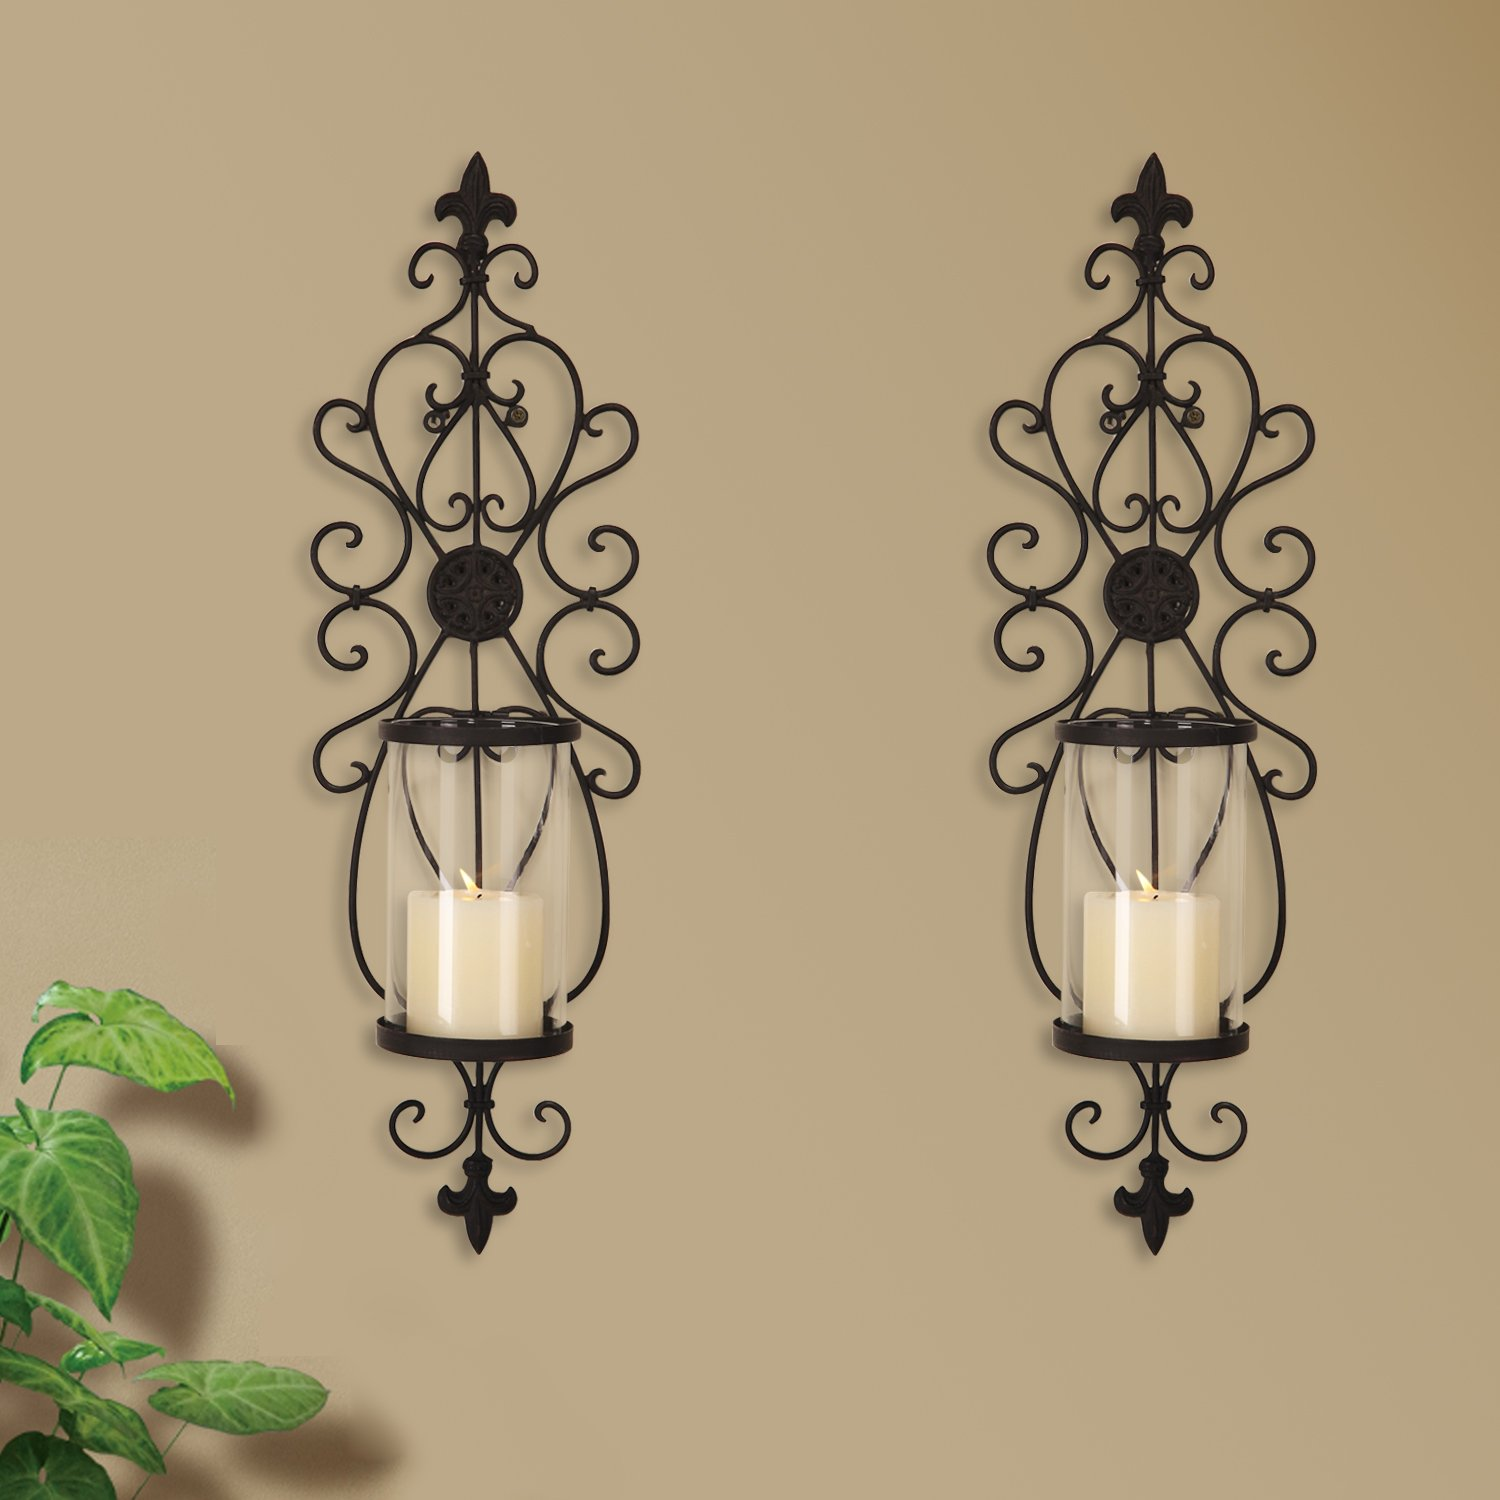 Adeco Iron and Glass Vertical Wall Hanging Scroll and Fleur De Lis Design 1 Pillar Candle Holder Sconce